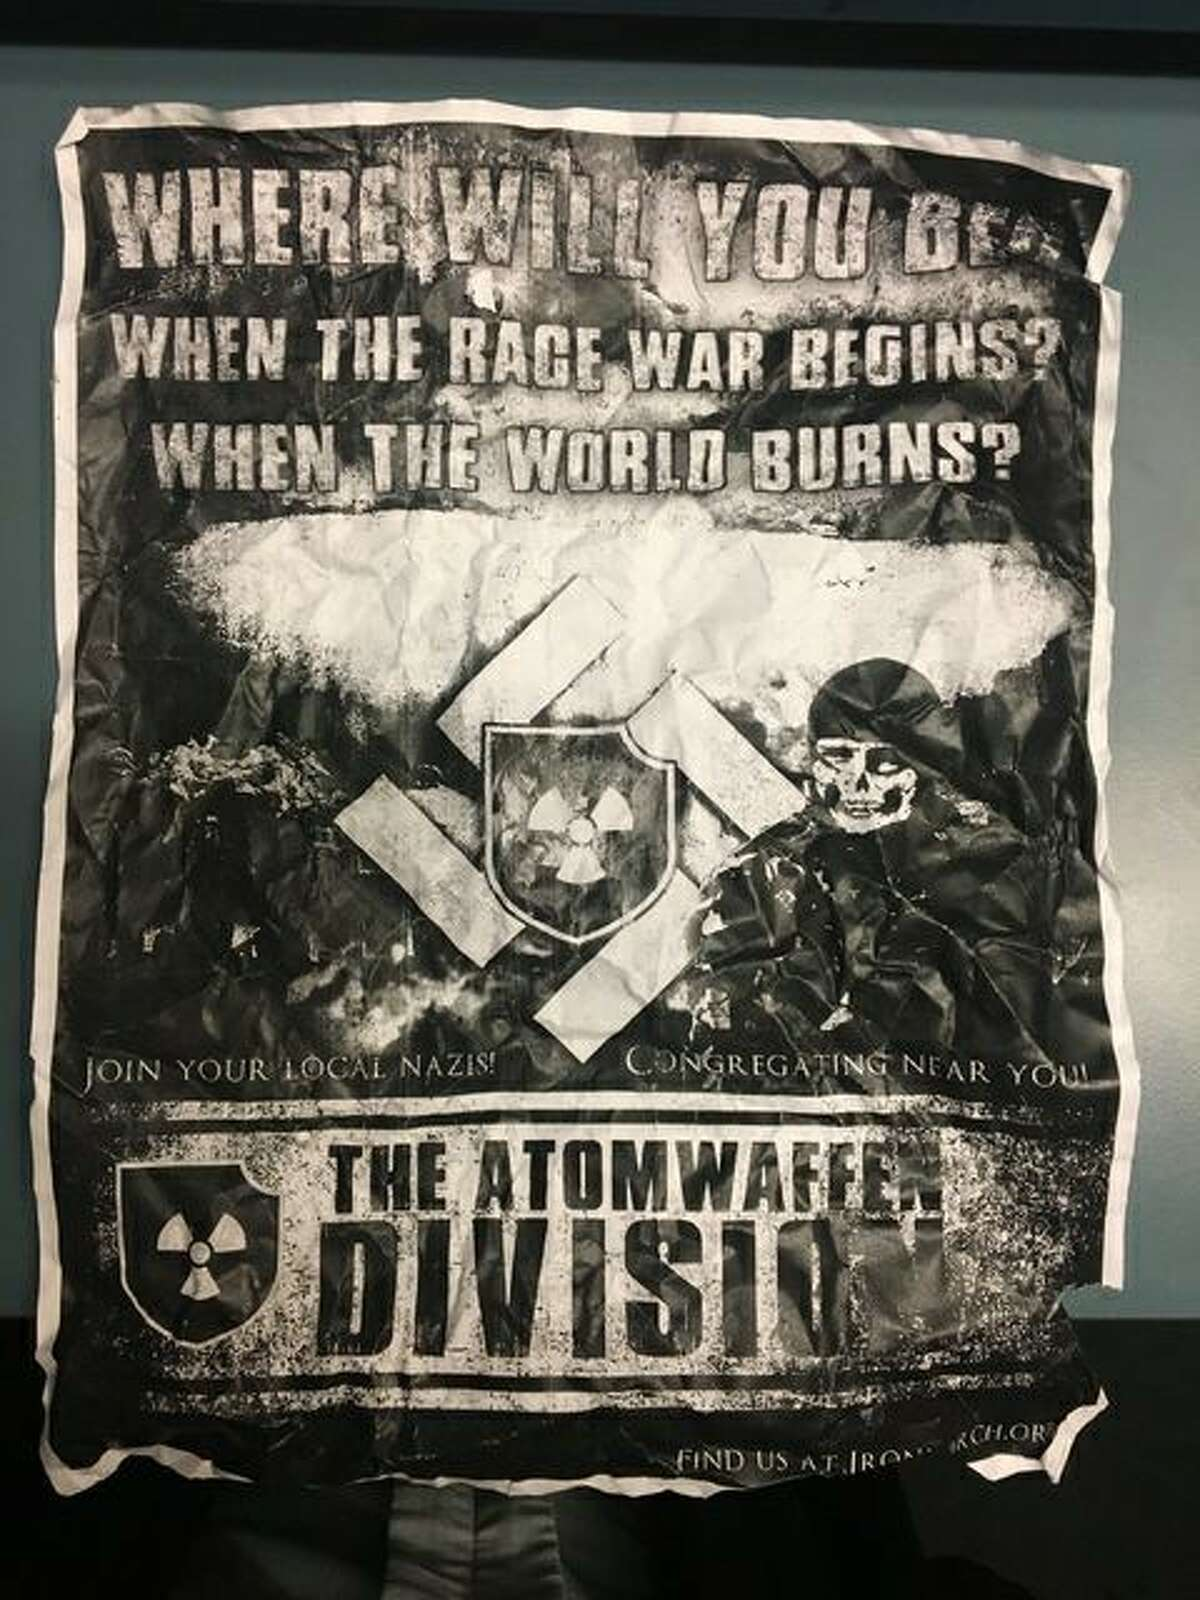 """The cast and crew of University of Washington's production of Shakespeare's """"As You Like It"""" found eight copies of this neo-Nazi poster plastered to the theater's front door Wednesday night during their performance. UW police say similar posters have cropped up throughout campus."""